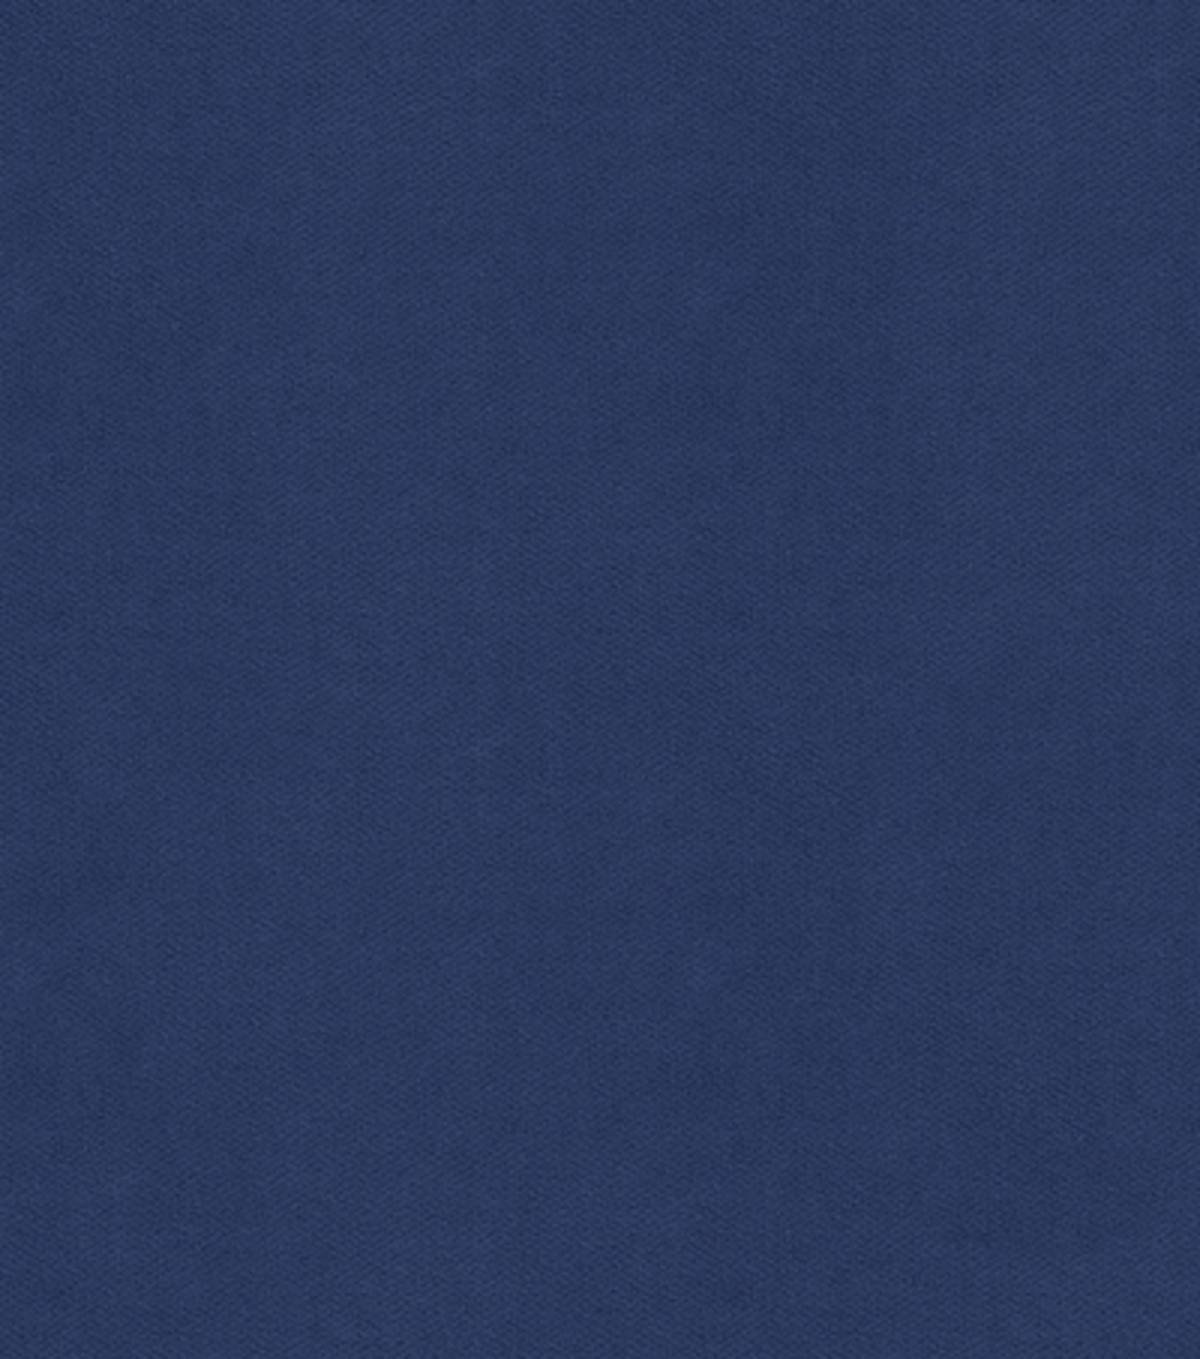 Home Decor 8\u0022x8\u0022 Fabric Swatch-Como-156-Mariner